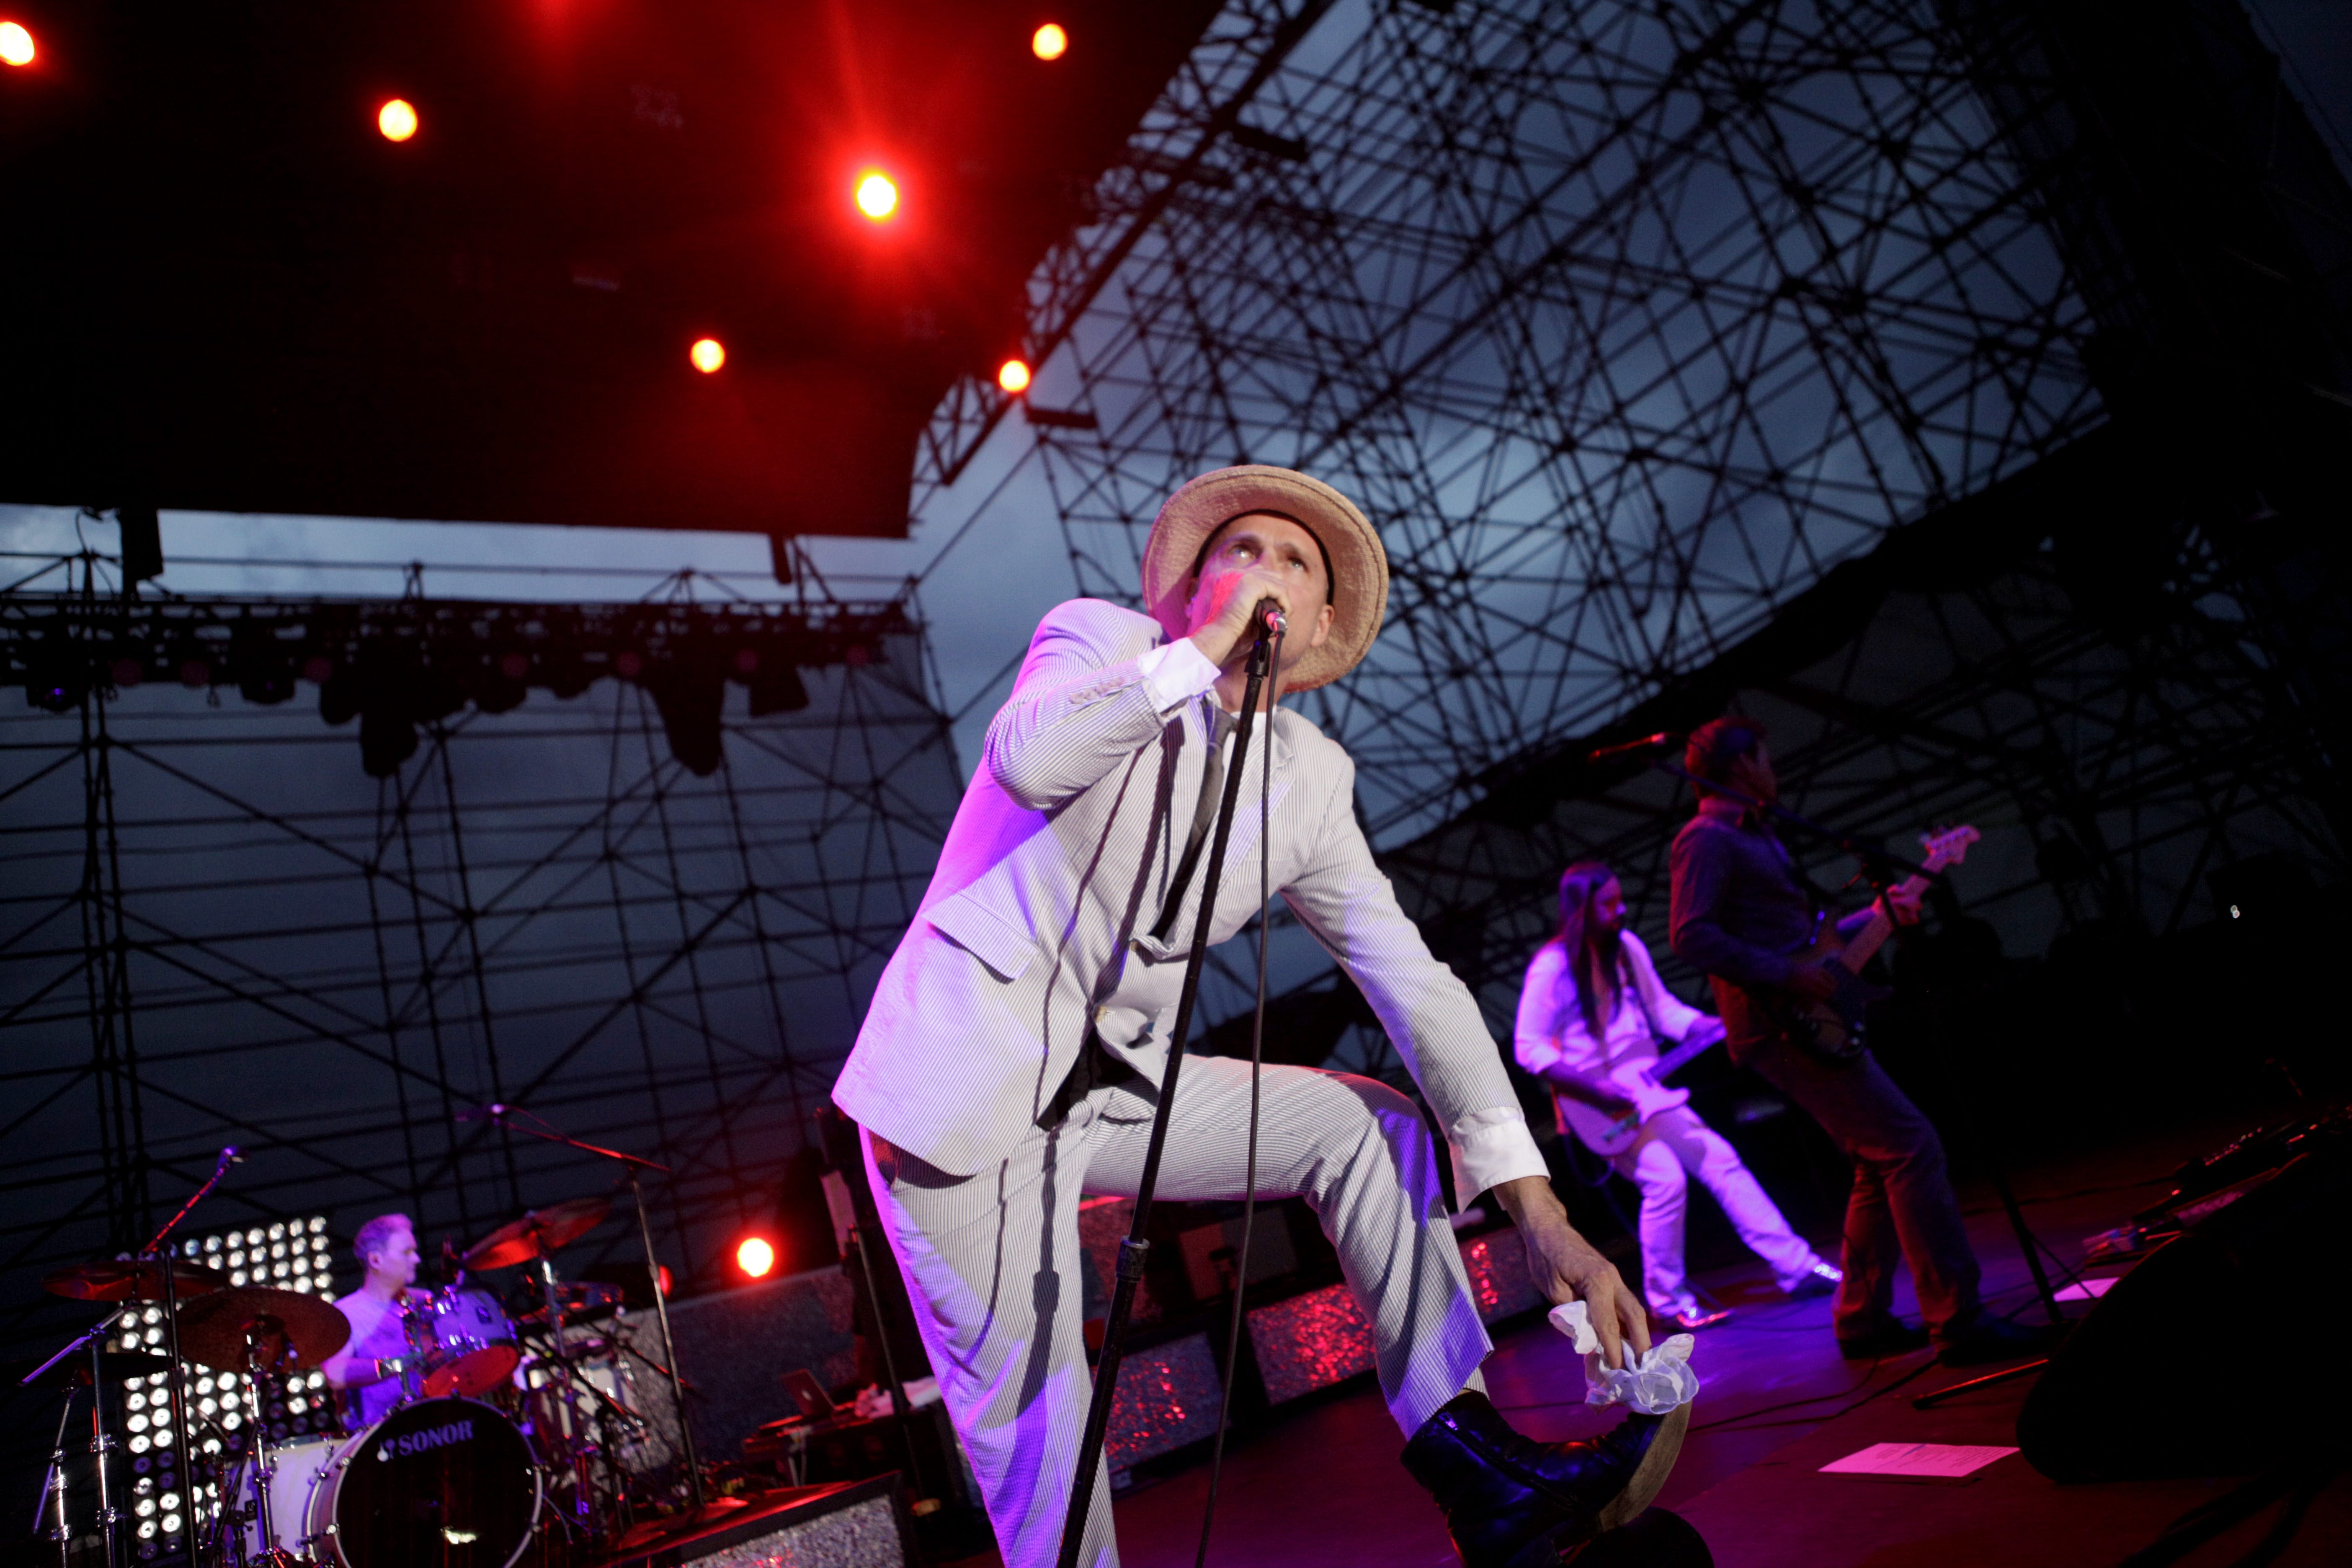 Lead singer Gord Downie, dressed in a seersucker suit with a black tie and fedora, performs with the Tragically Hip at Friday night's brief concert at the Outer Harbor.